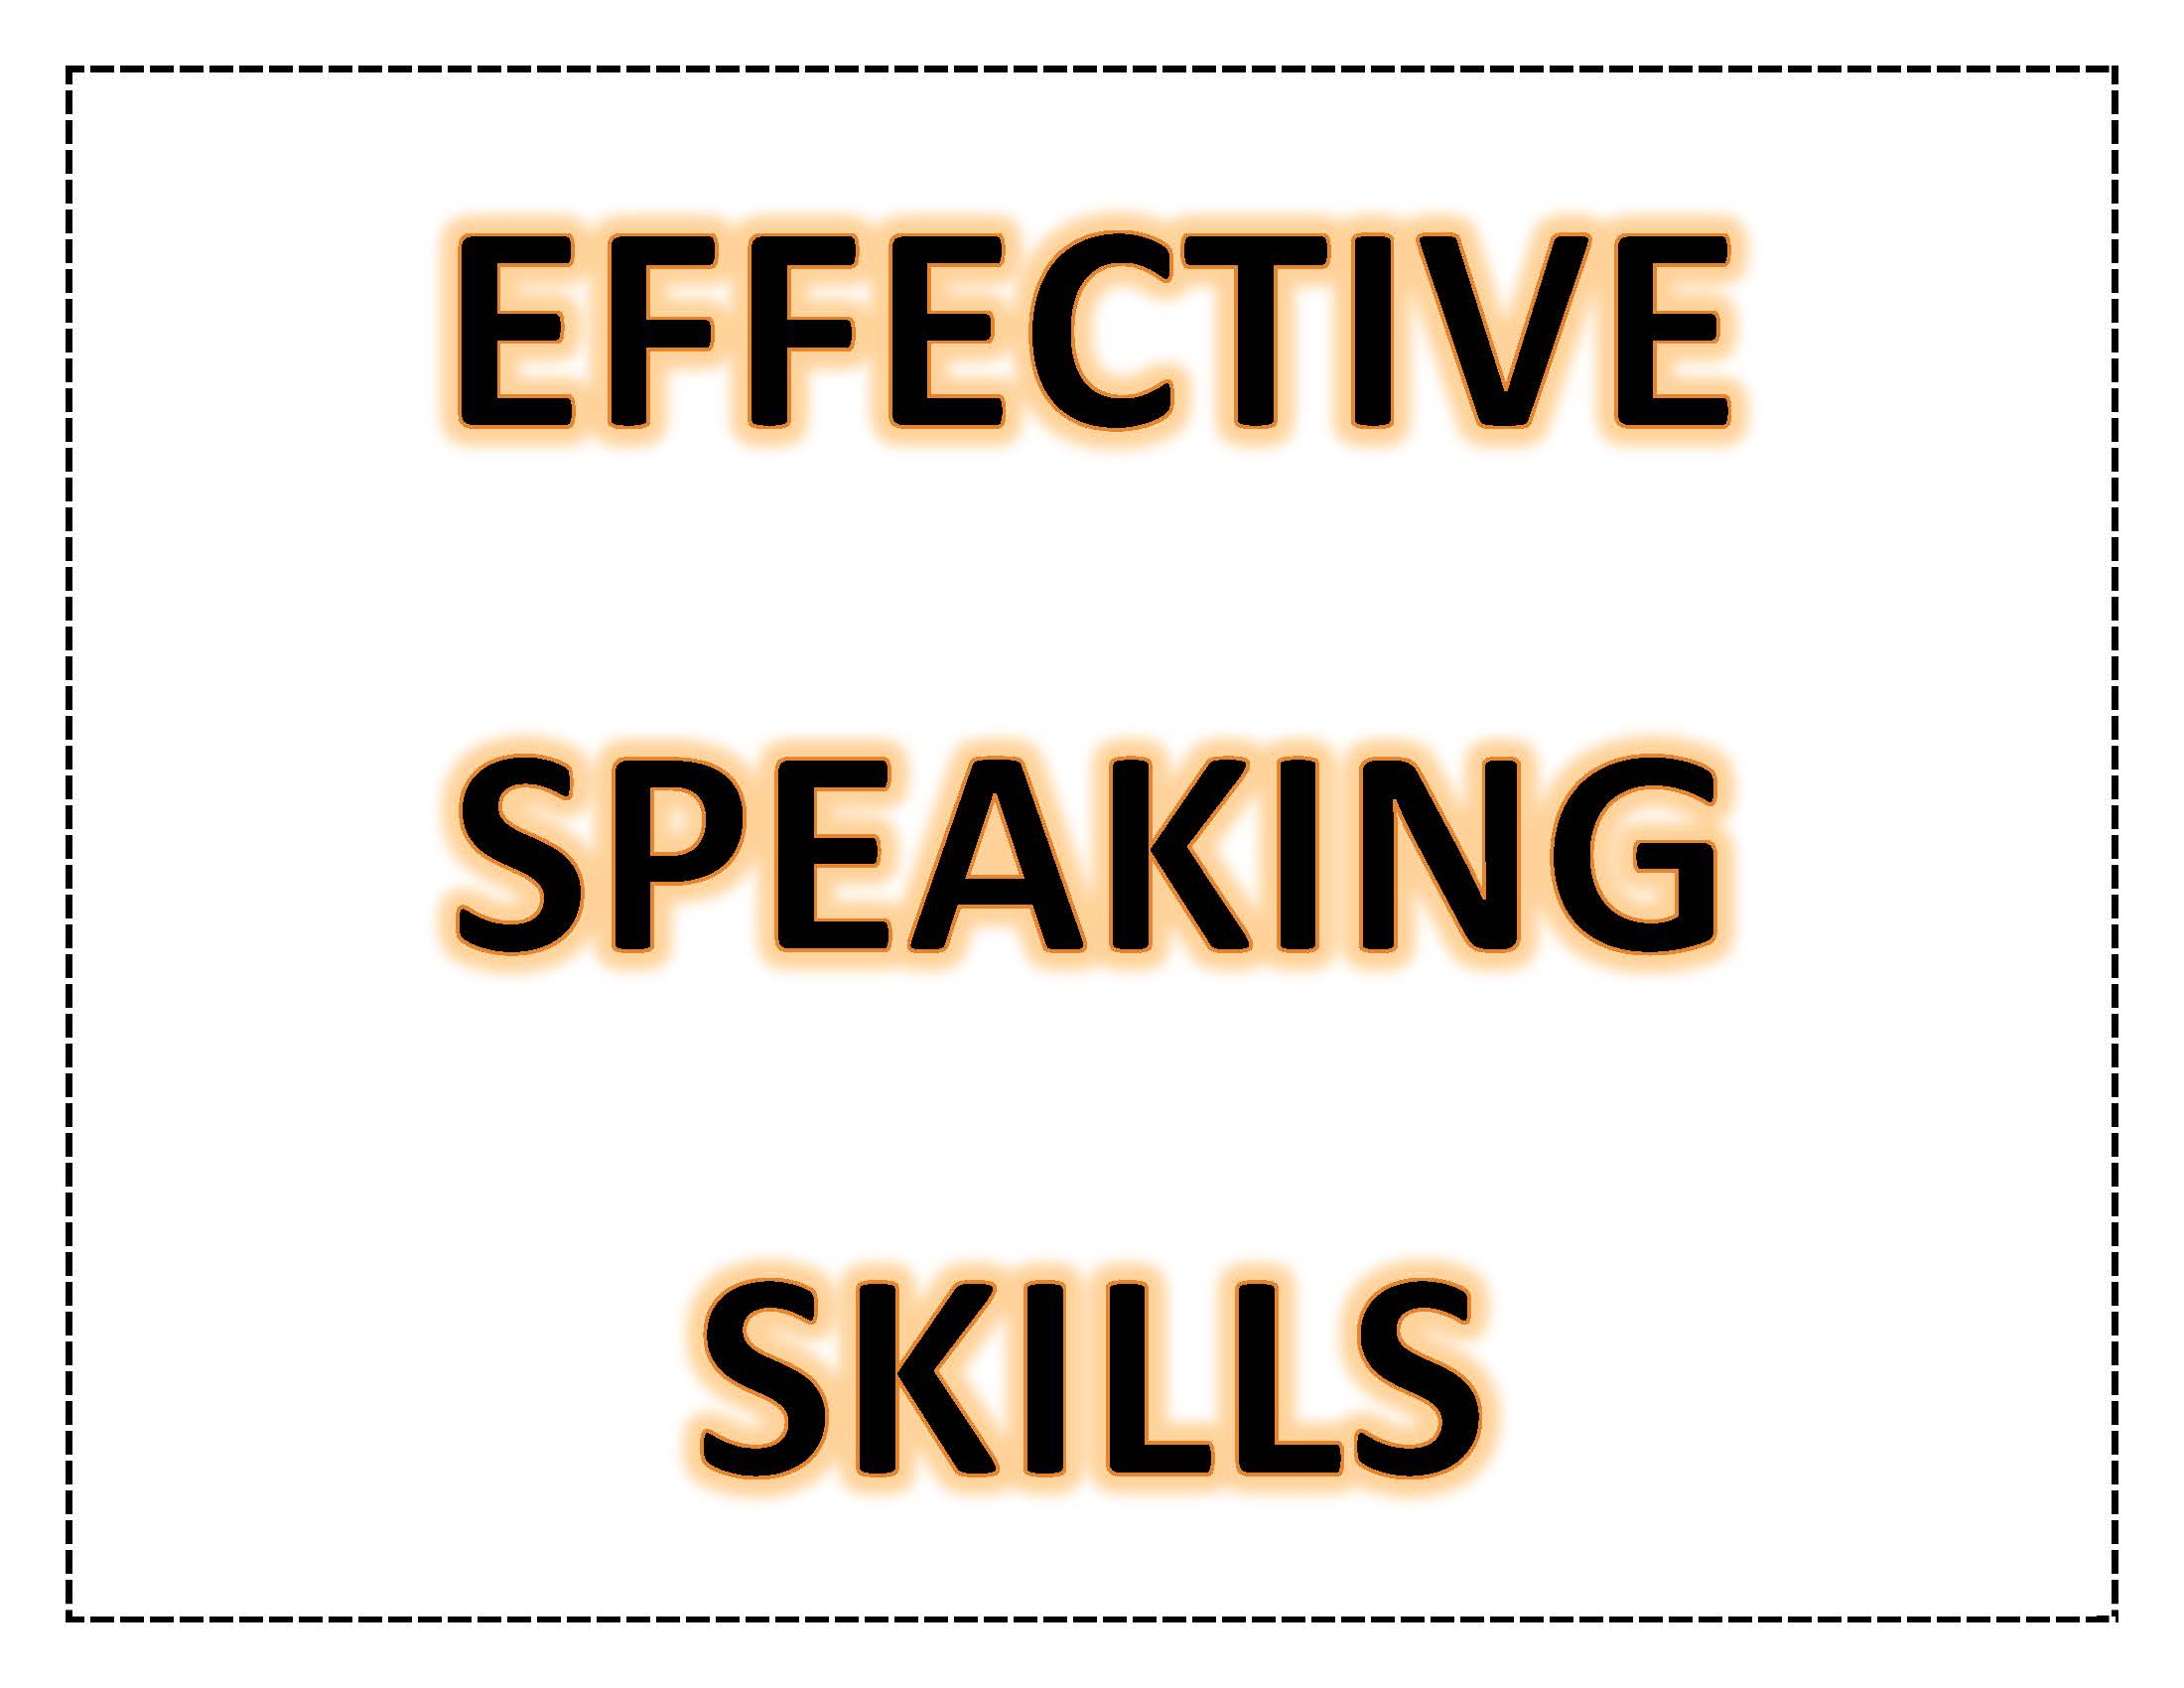 effective speaking skills An exercise to help develop your effective speaking skills: find a document to read, something about two pages in length - the first few pages of a book would work well read your document through silently first, then read it aloud in your normal speaking voice.